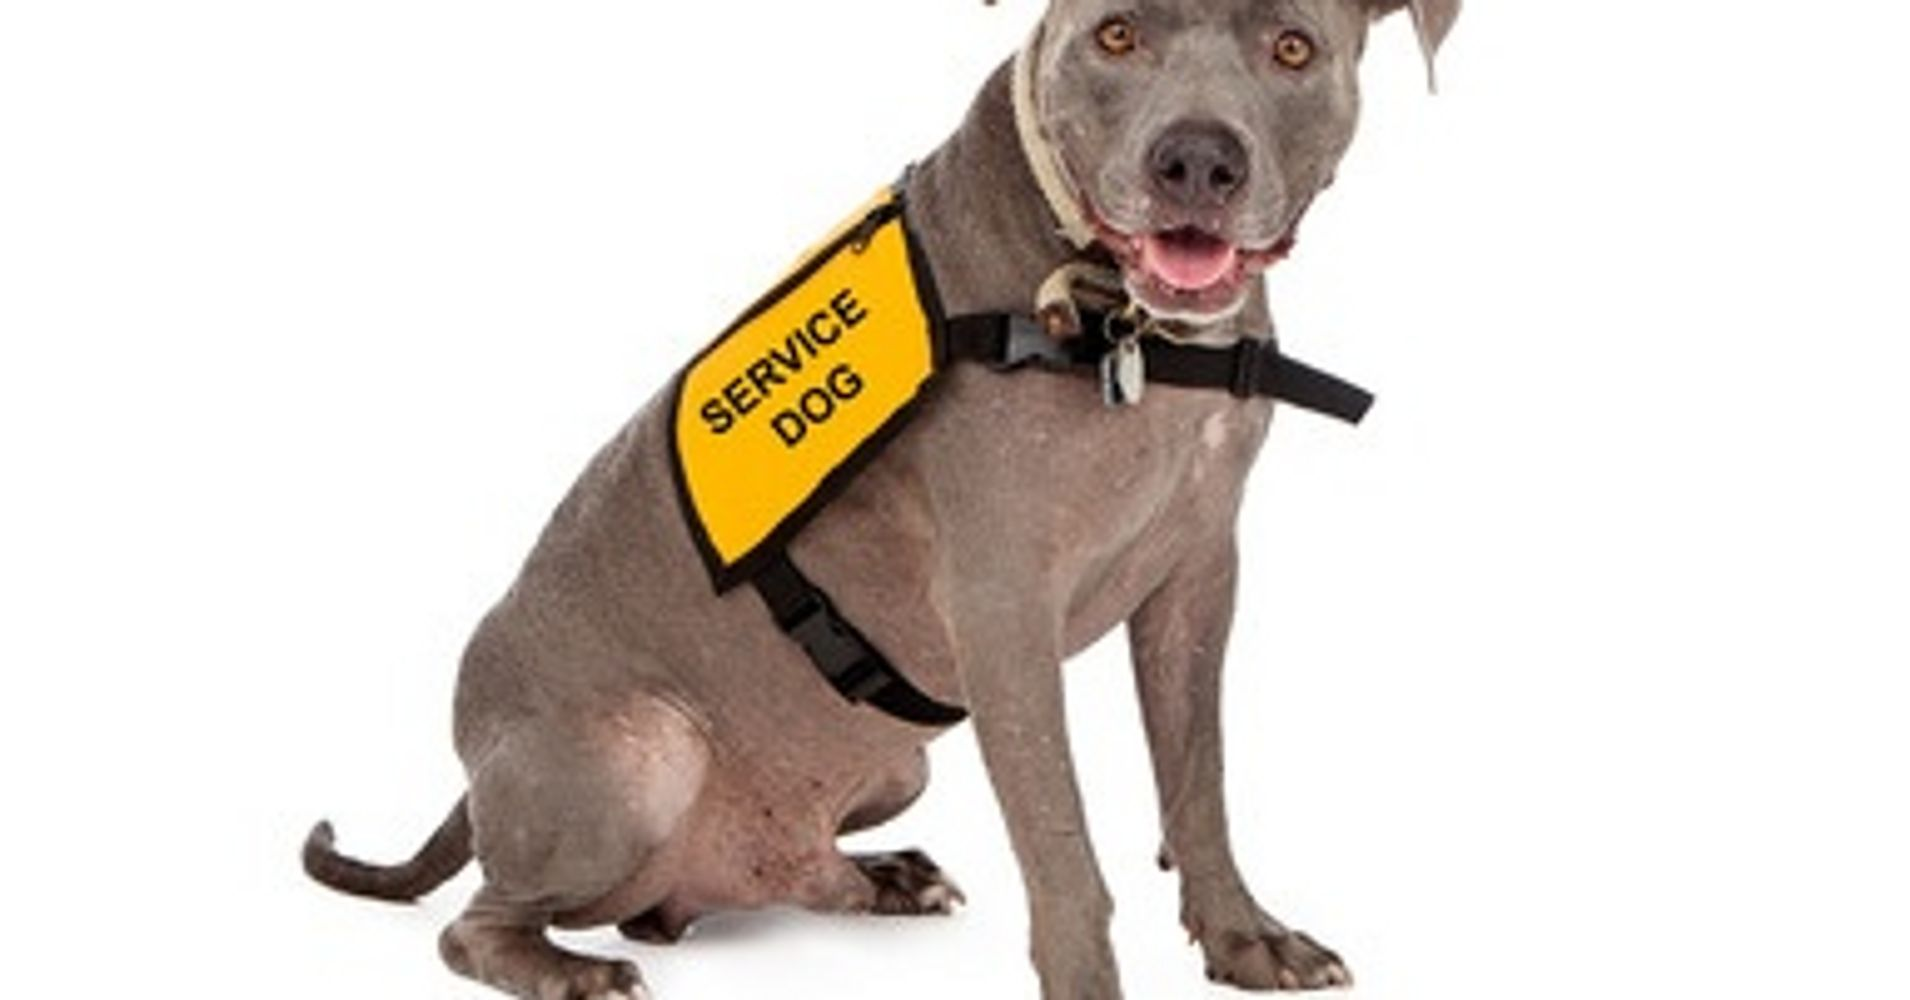 The fake service animal problem huffpost 1betcityfo Image collections